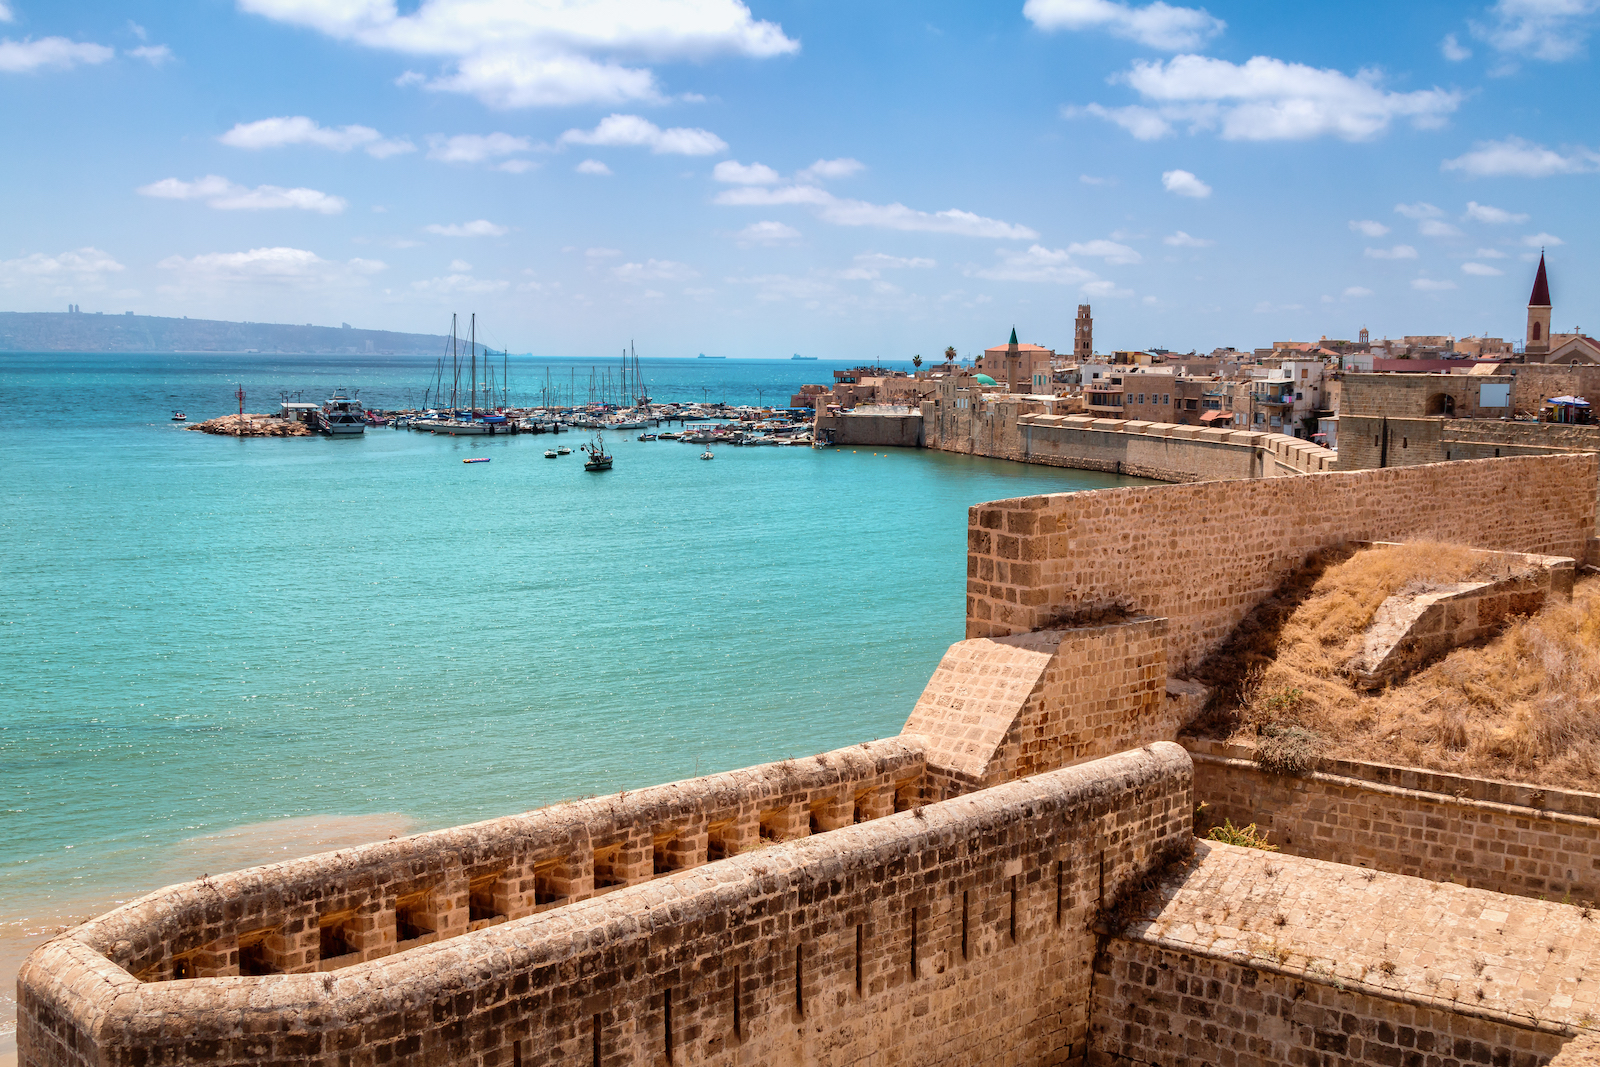 The Walls of Akko (Acre), Israel